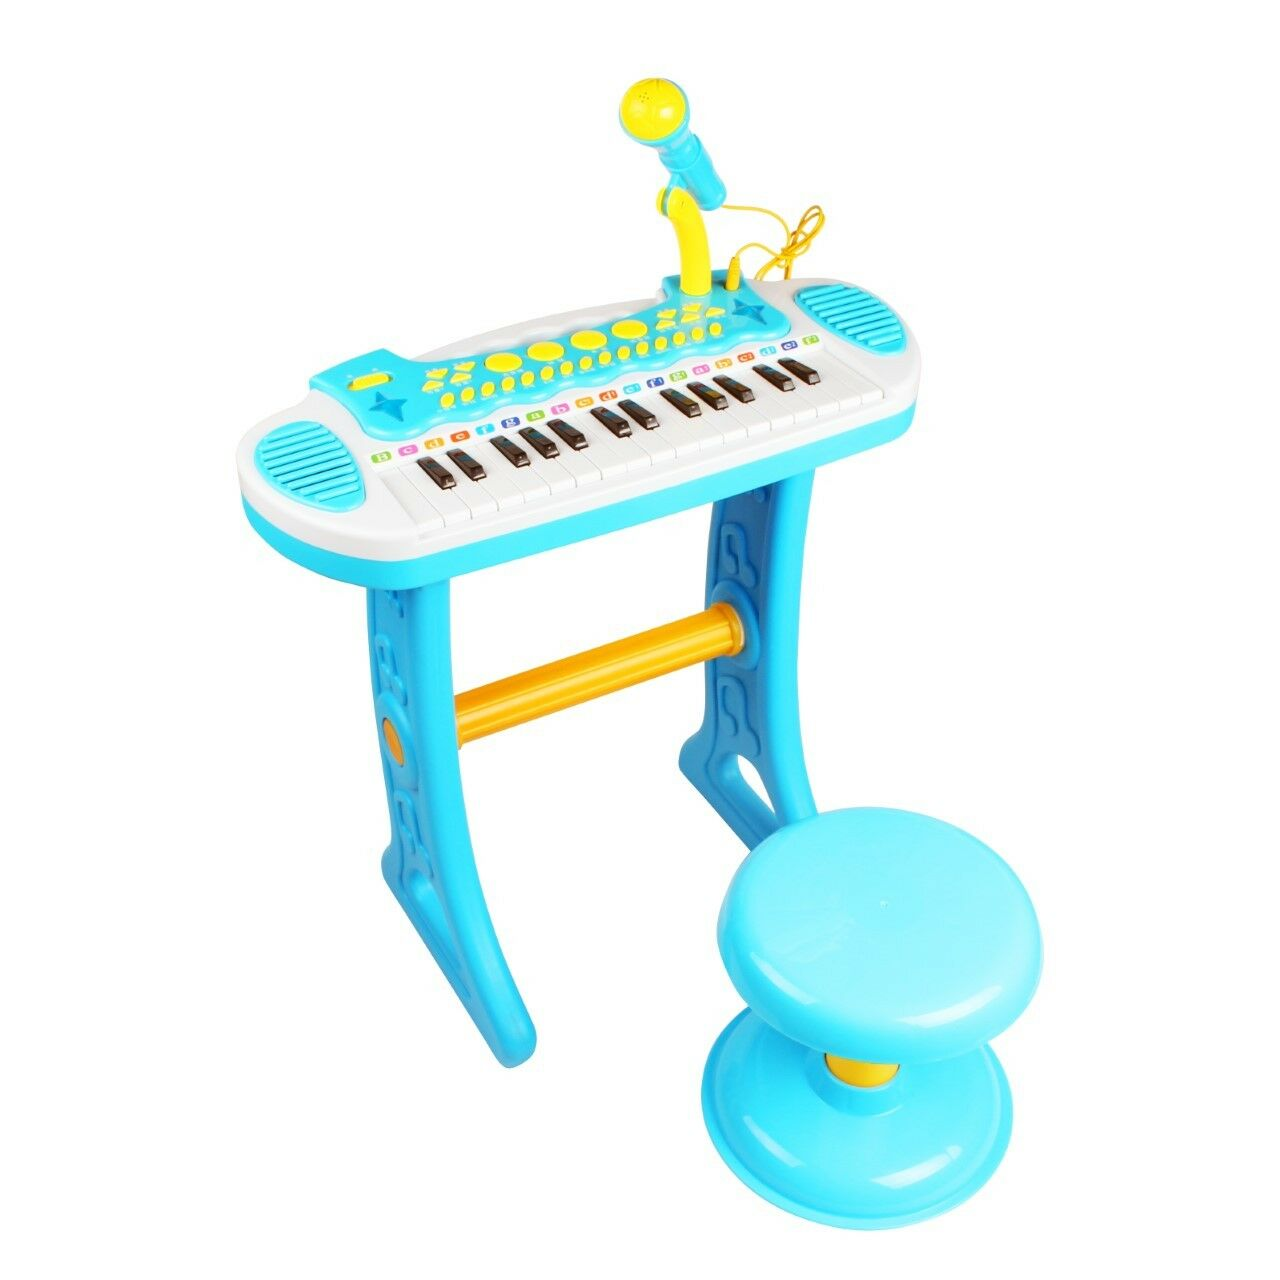 Boys Blue Childrens Electronic 31 Key Keyboard Piano Toy